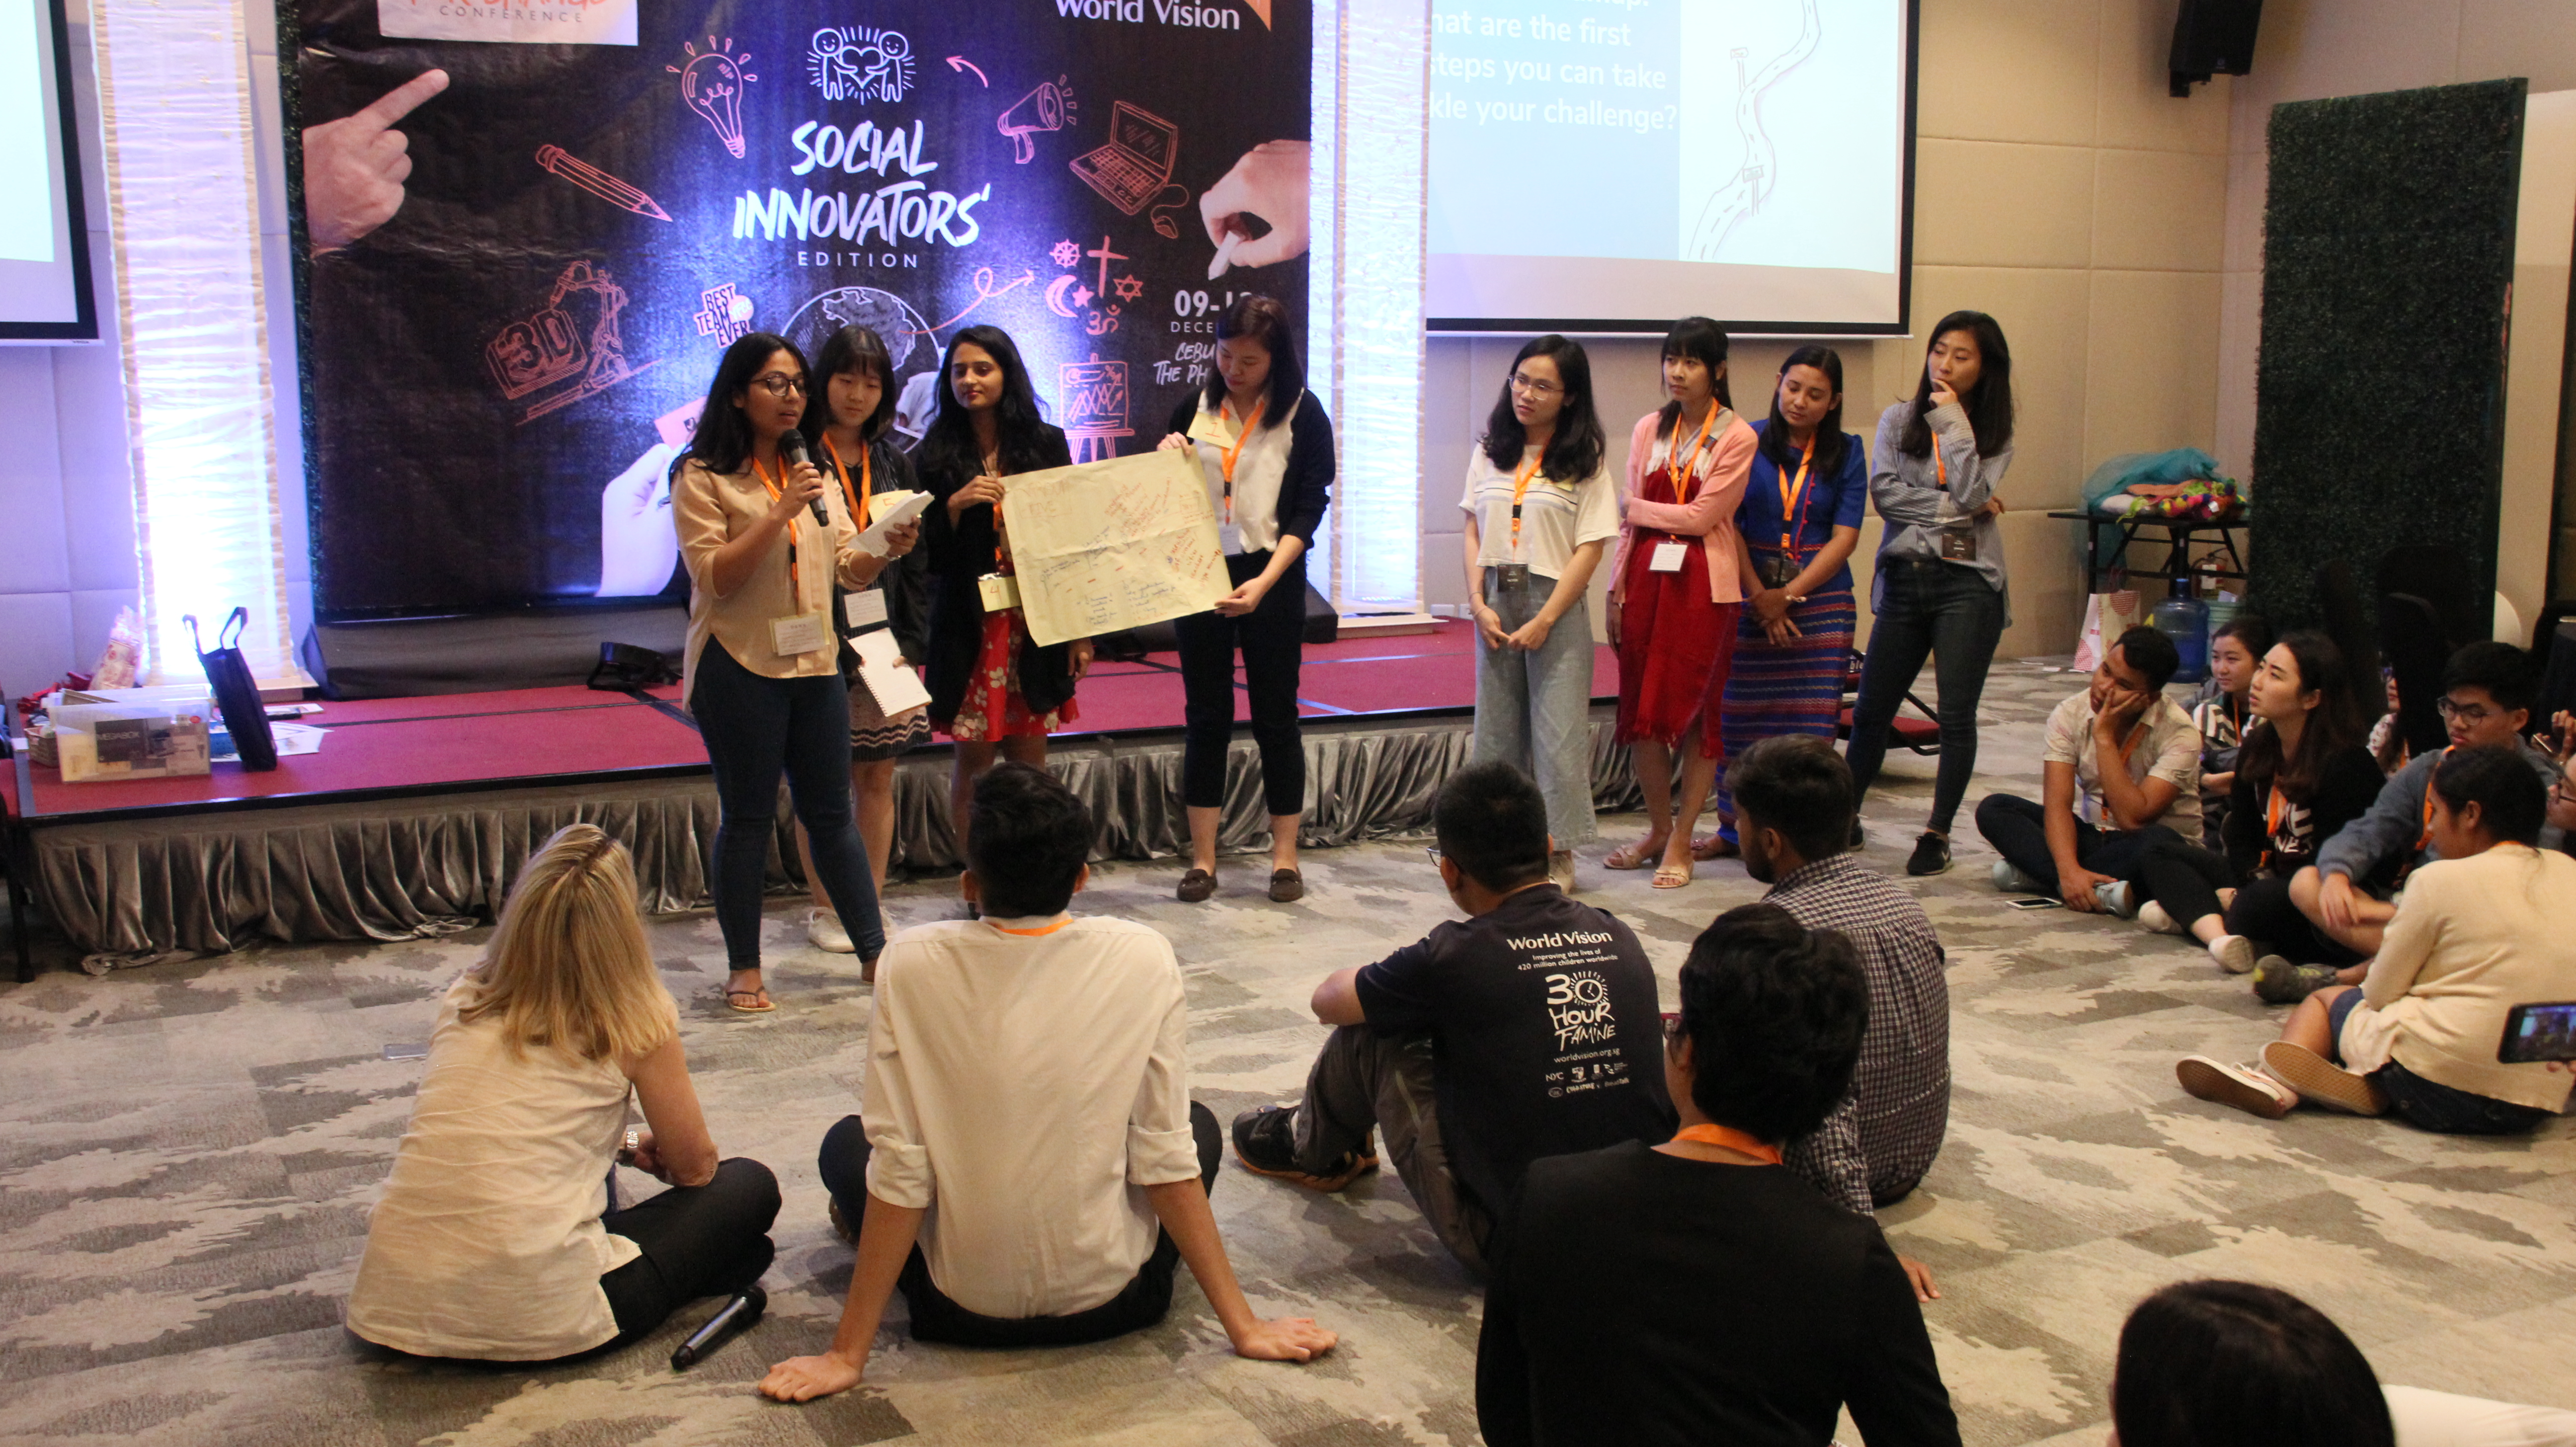 Youths sharing their proposals on how to innovate for good.